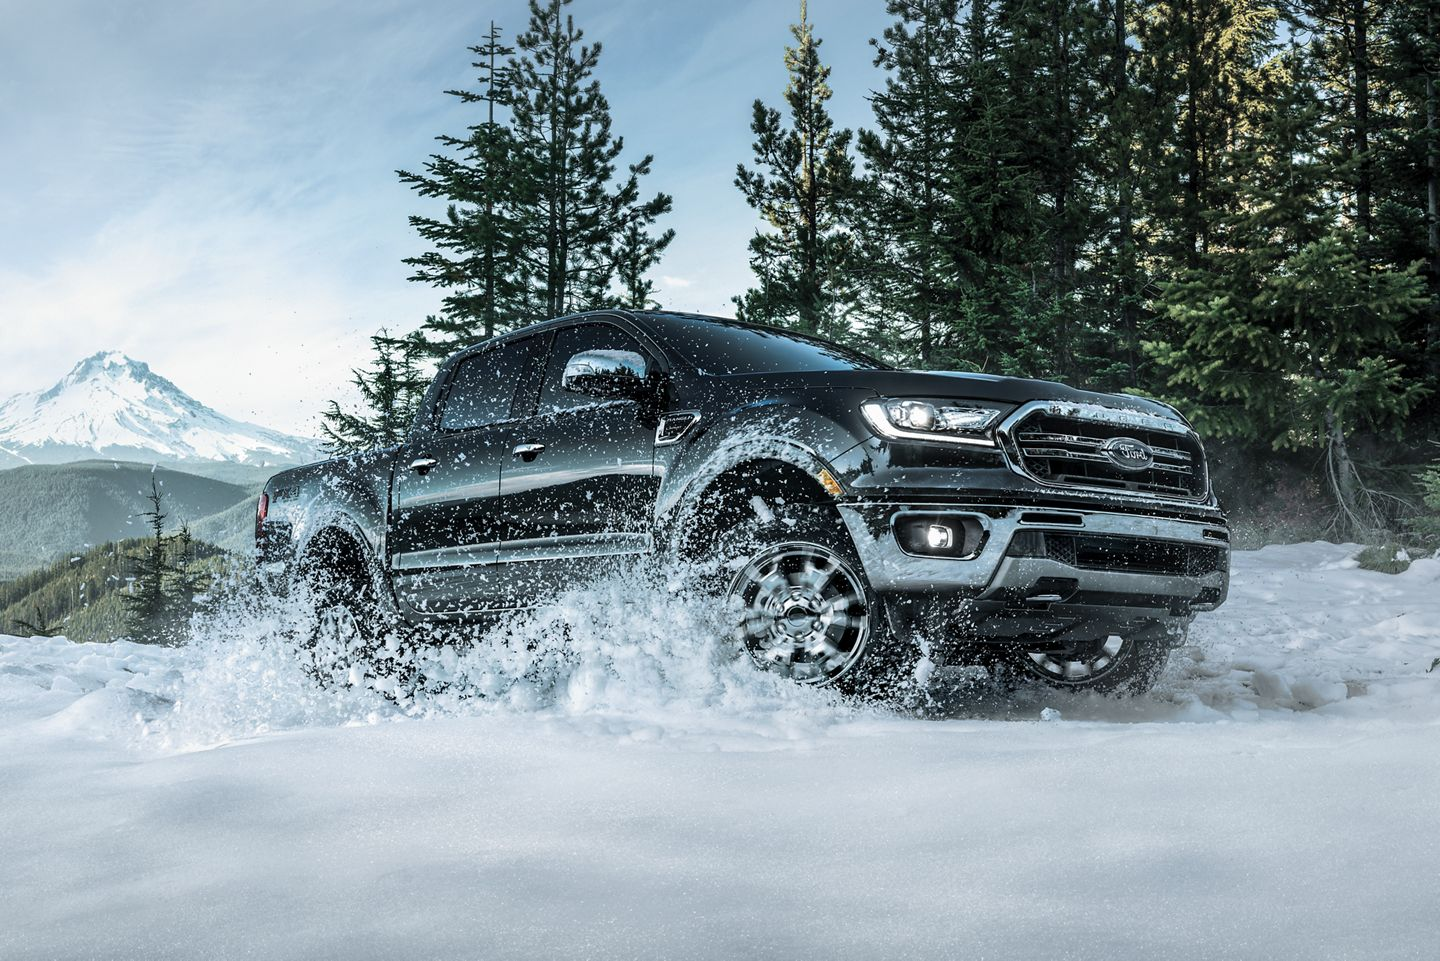 black 209 ford ranger driving in the snow